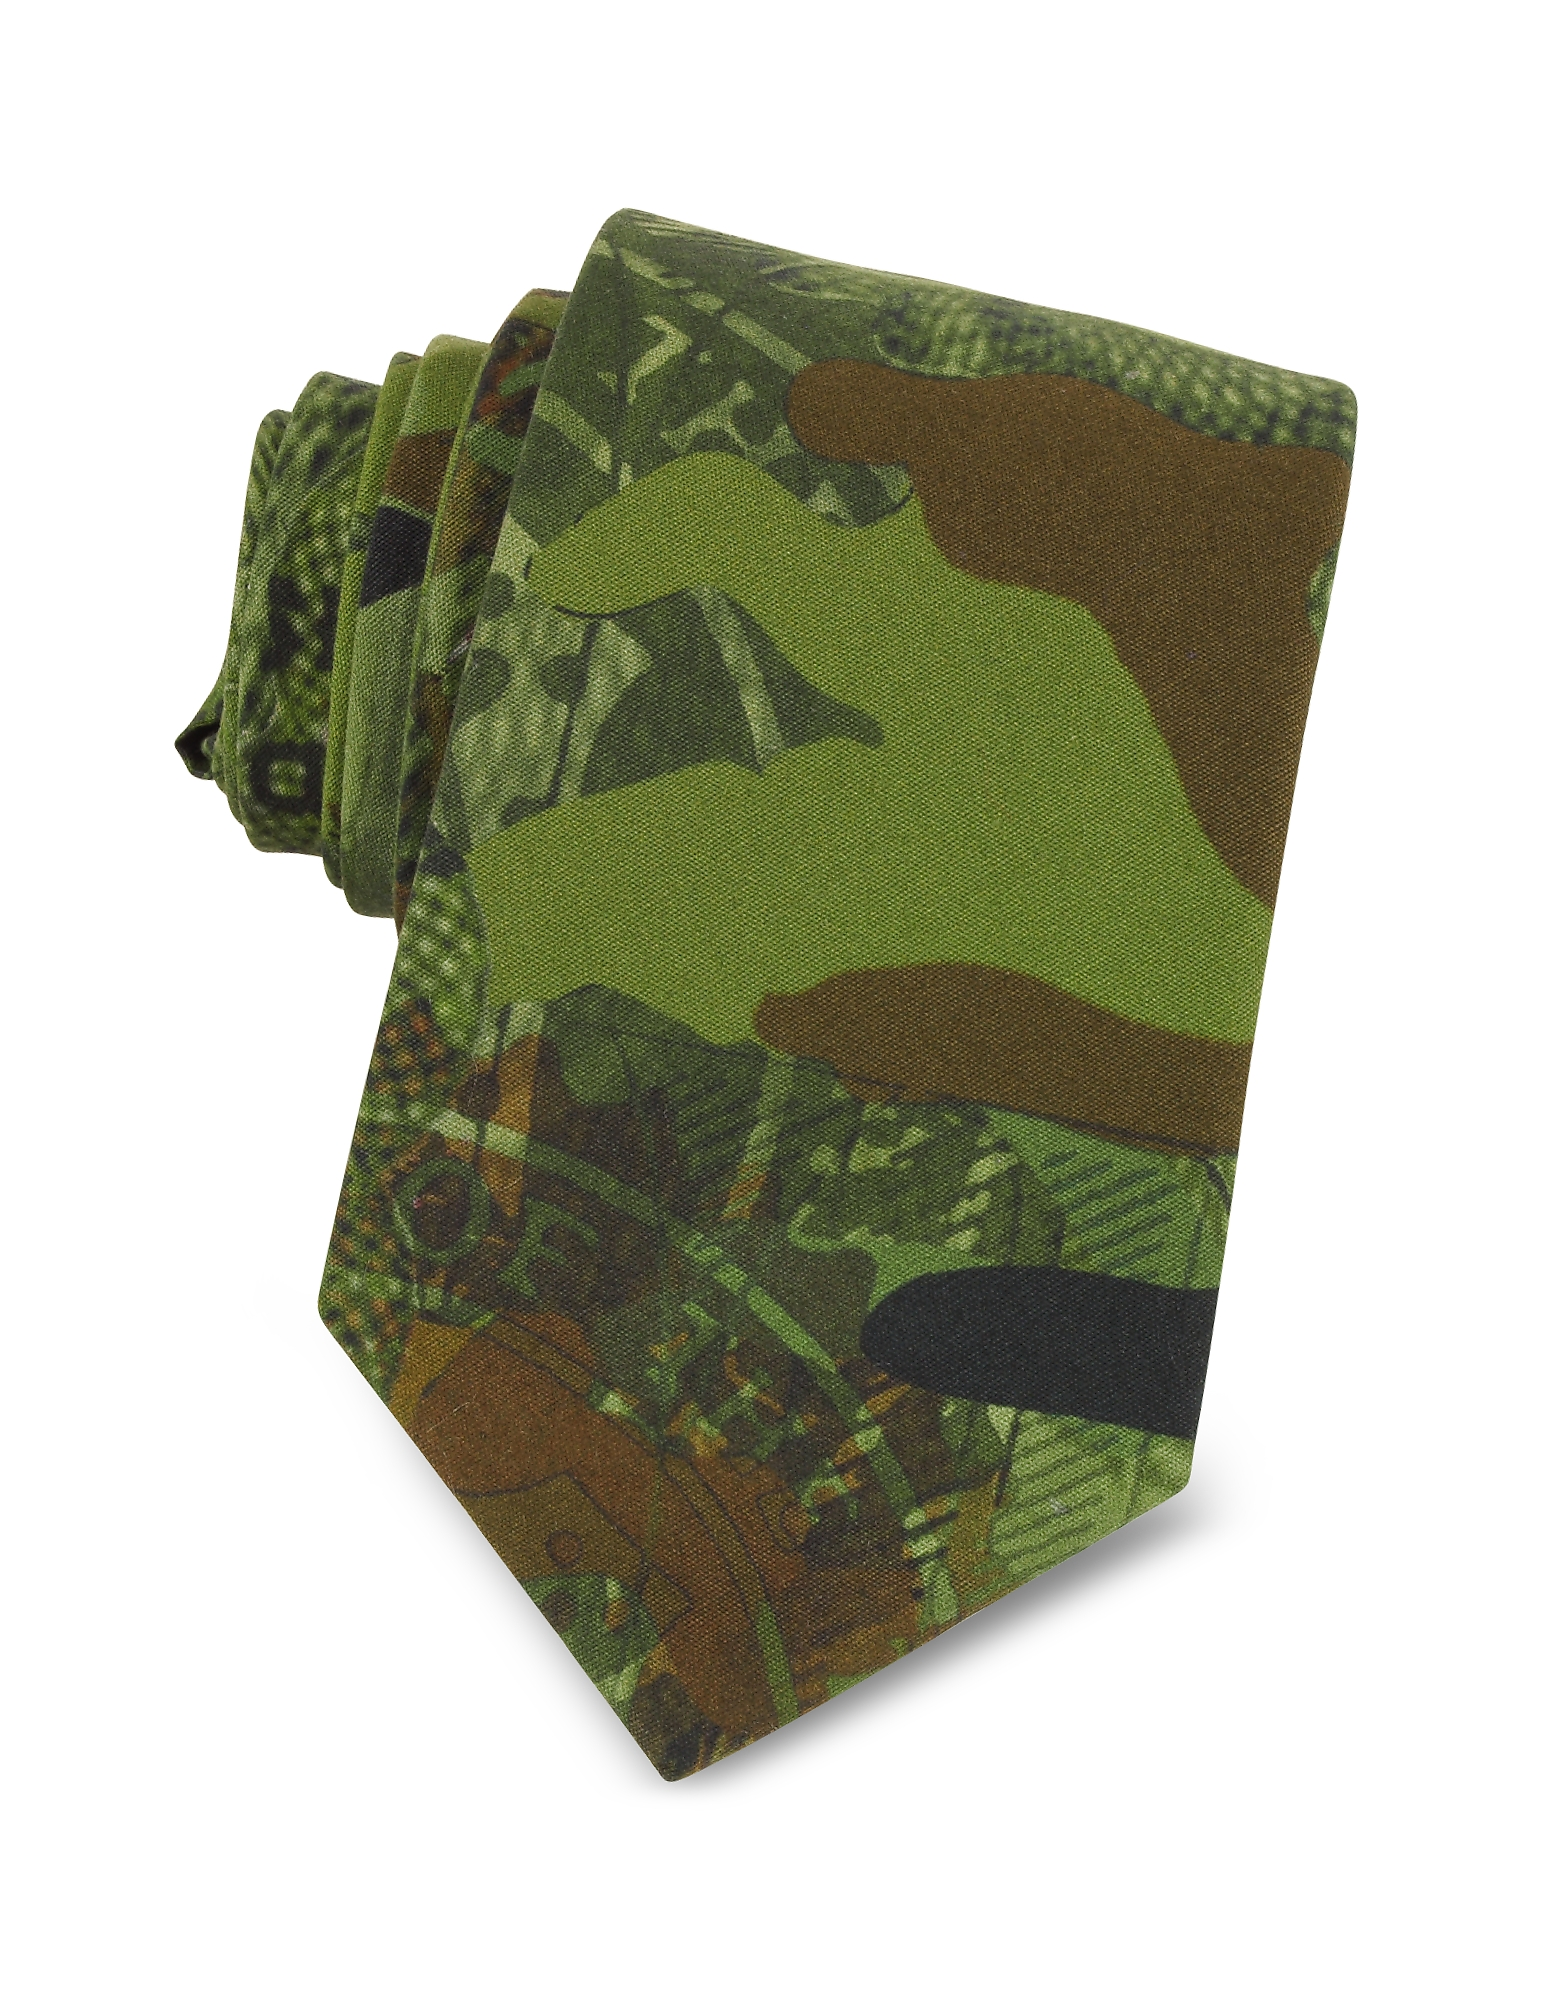 Green Camouflage and Money Printed Cotton Narrow Tie